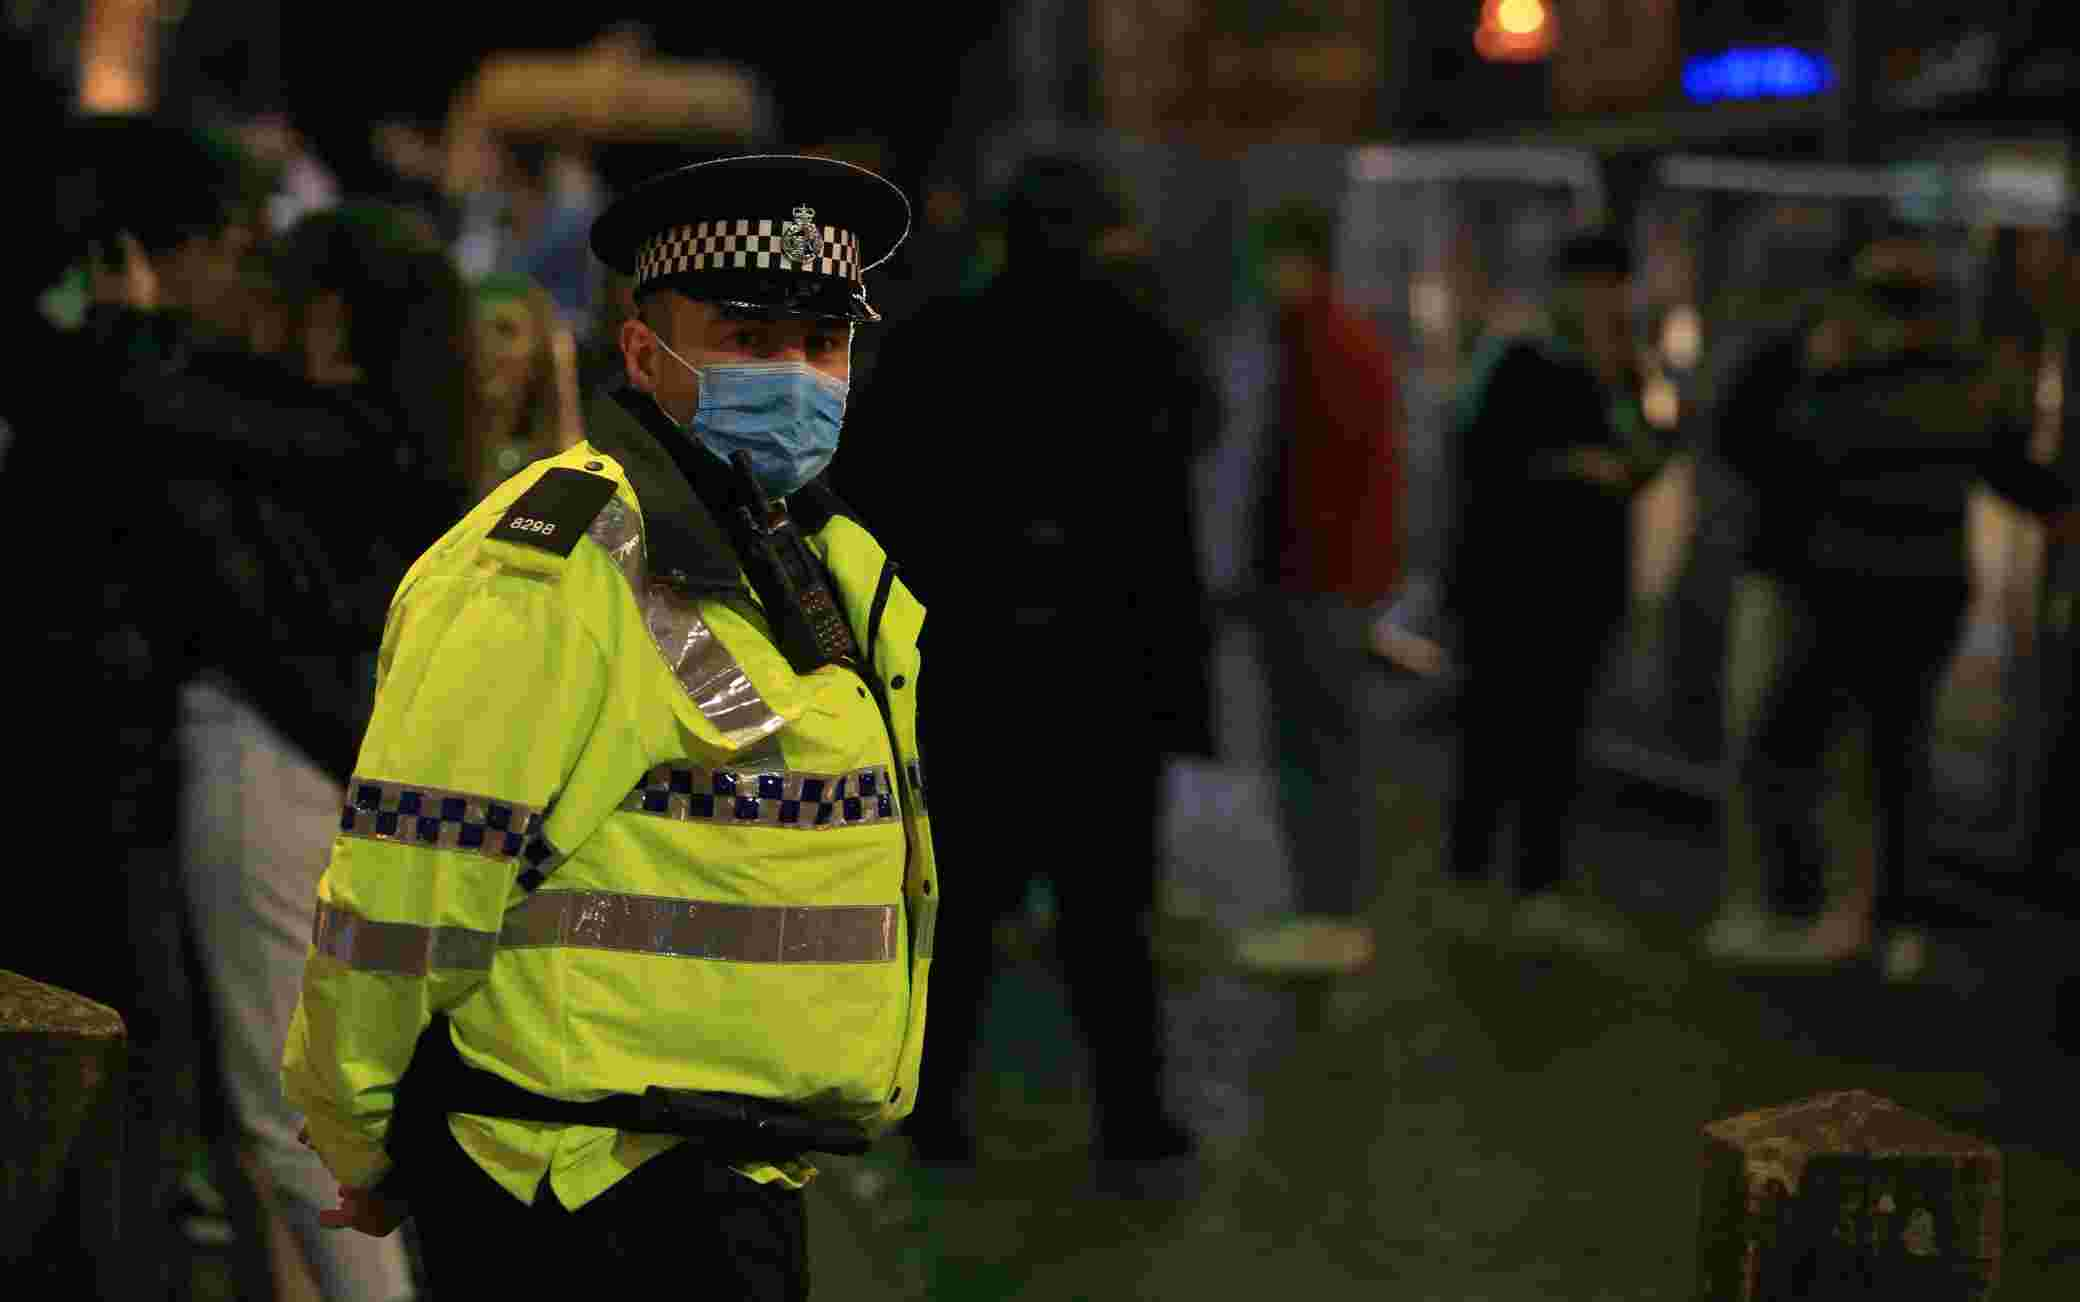 Police patrol as revellers enjoy a night out in the centre of Liverpool, north west England on October 10, 2020 ahead of new measures set to be introduced in the northwest next week to help stem the spread of the novel coronavirus. - Prime Minister Boris Johnson is expected to outline the new regime on Monday as rates of Covid 19 infection surge particularly in the north, worsening a national death toll of more than 42,000 which is already the worst in Europe. (Photo by Lindsey Parnaby / AFP) (Photo by LINDSEY PARNABY/AFP via Getty Images)